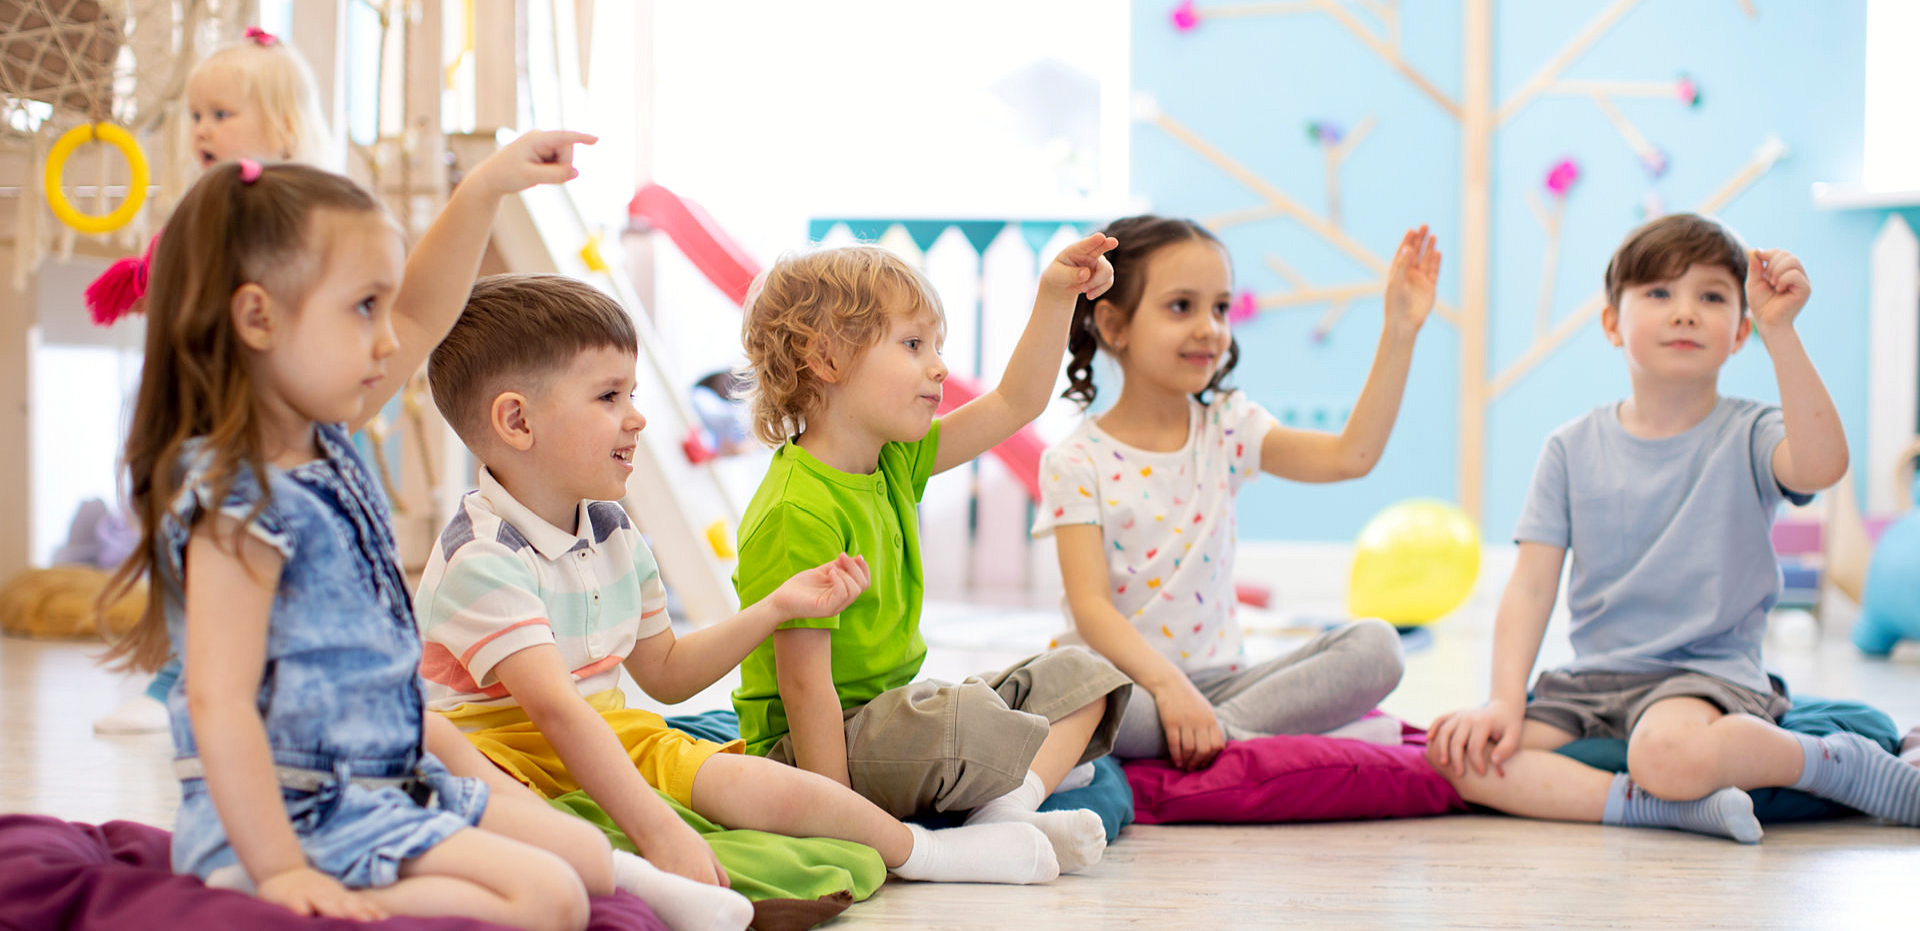 children pointing while sitting down